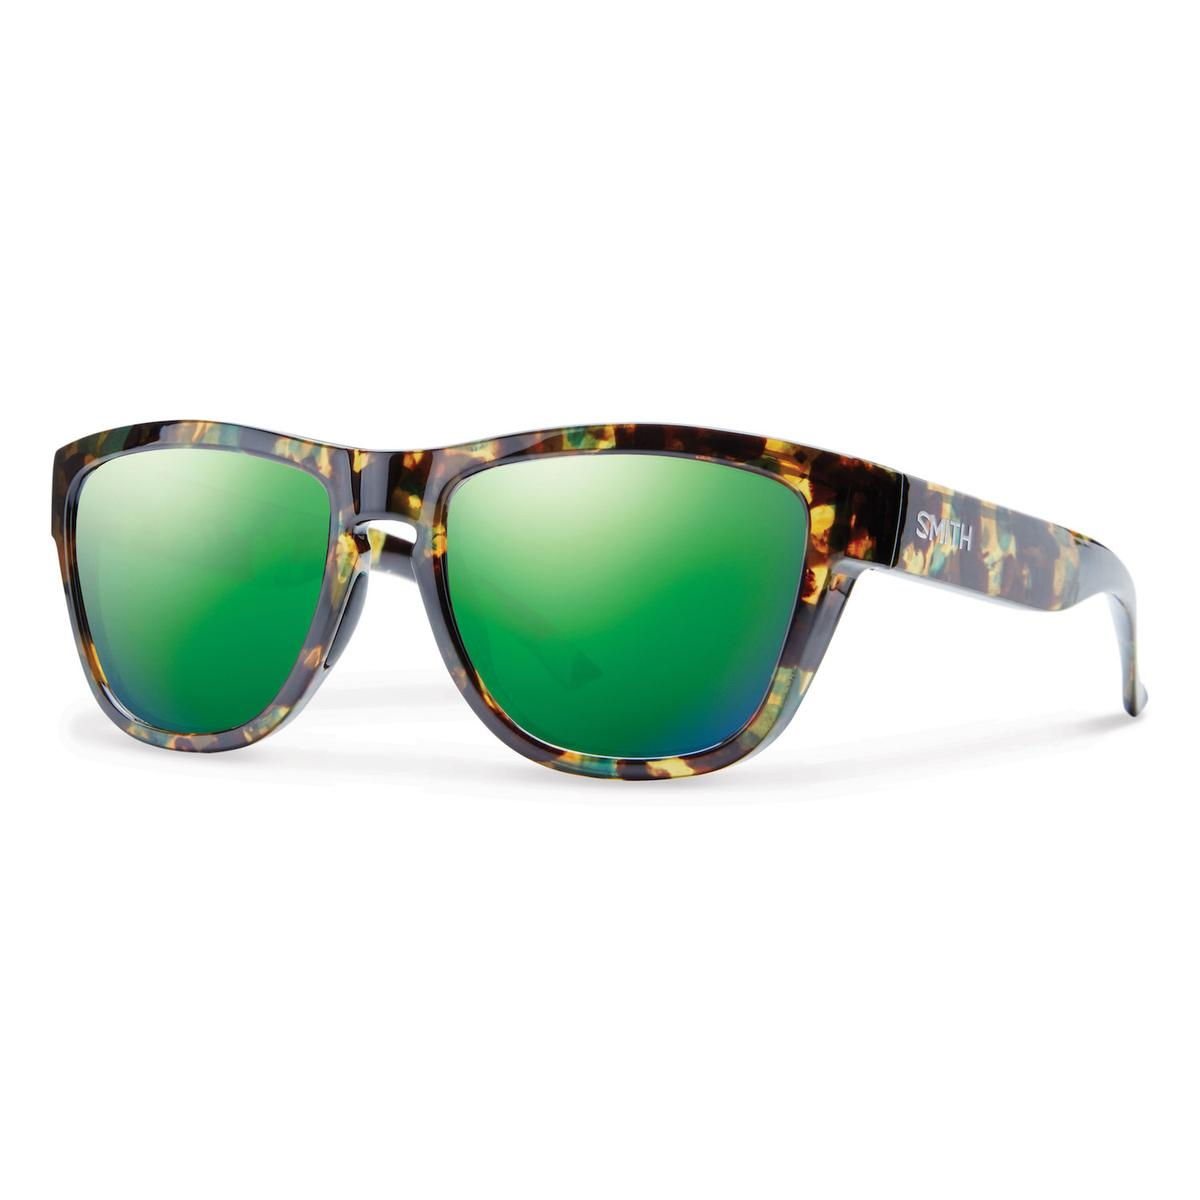 Smith Clark Men's Sunglasses